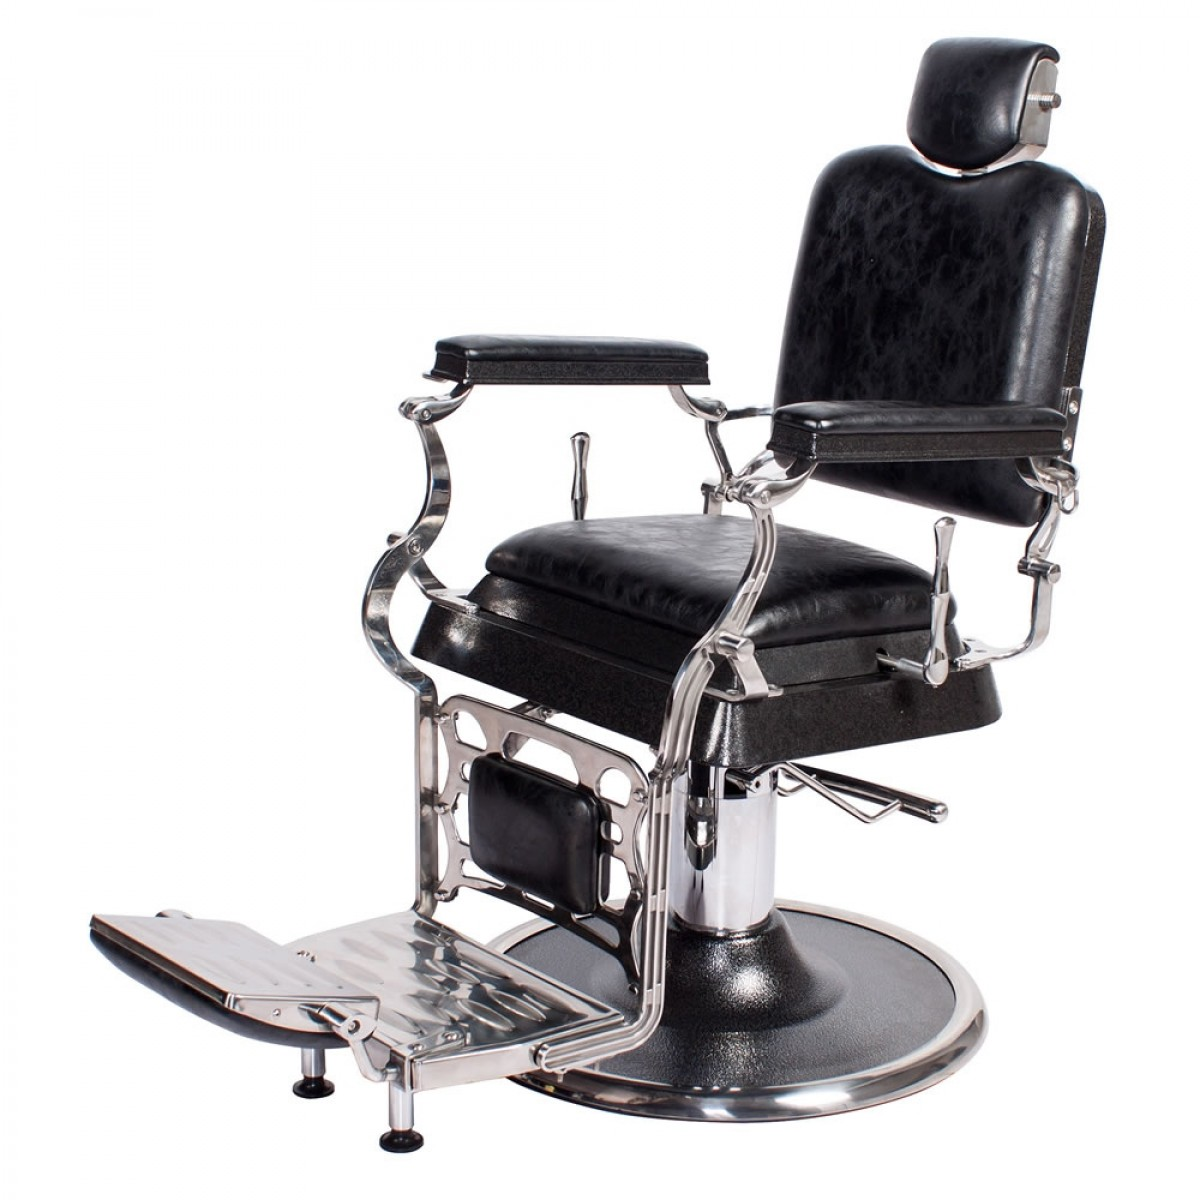 Barber Shop Chairs Quotemperor Quot Barber Chair In Antique Black Barber Shop